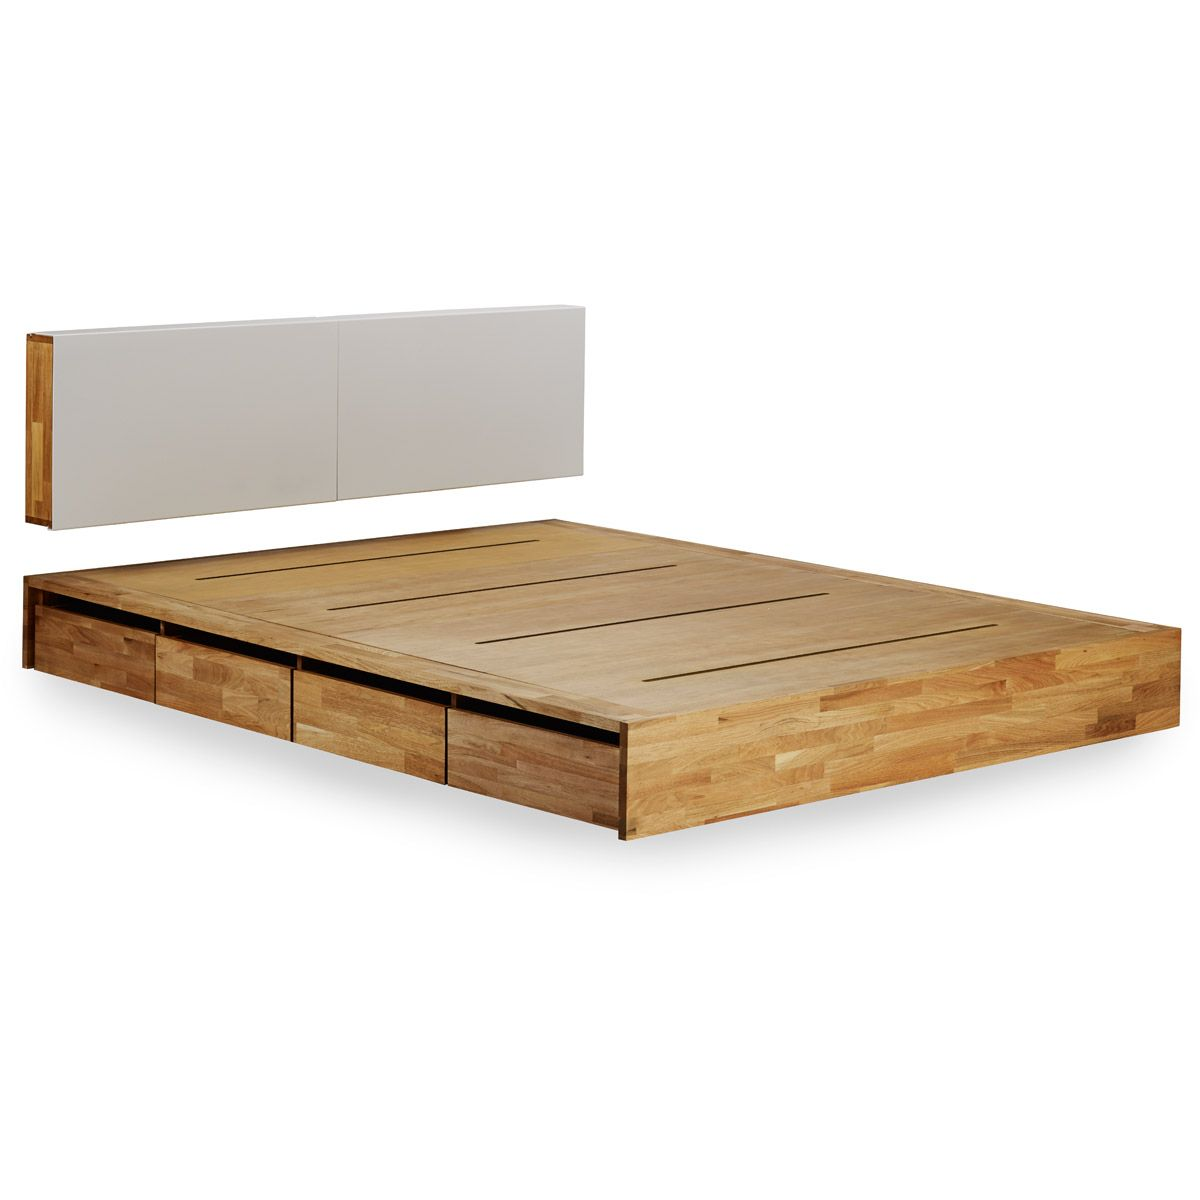 Amusing topic Full size platform bed with storage thought